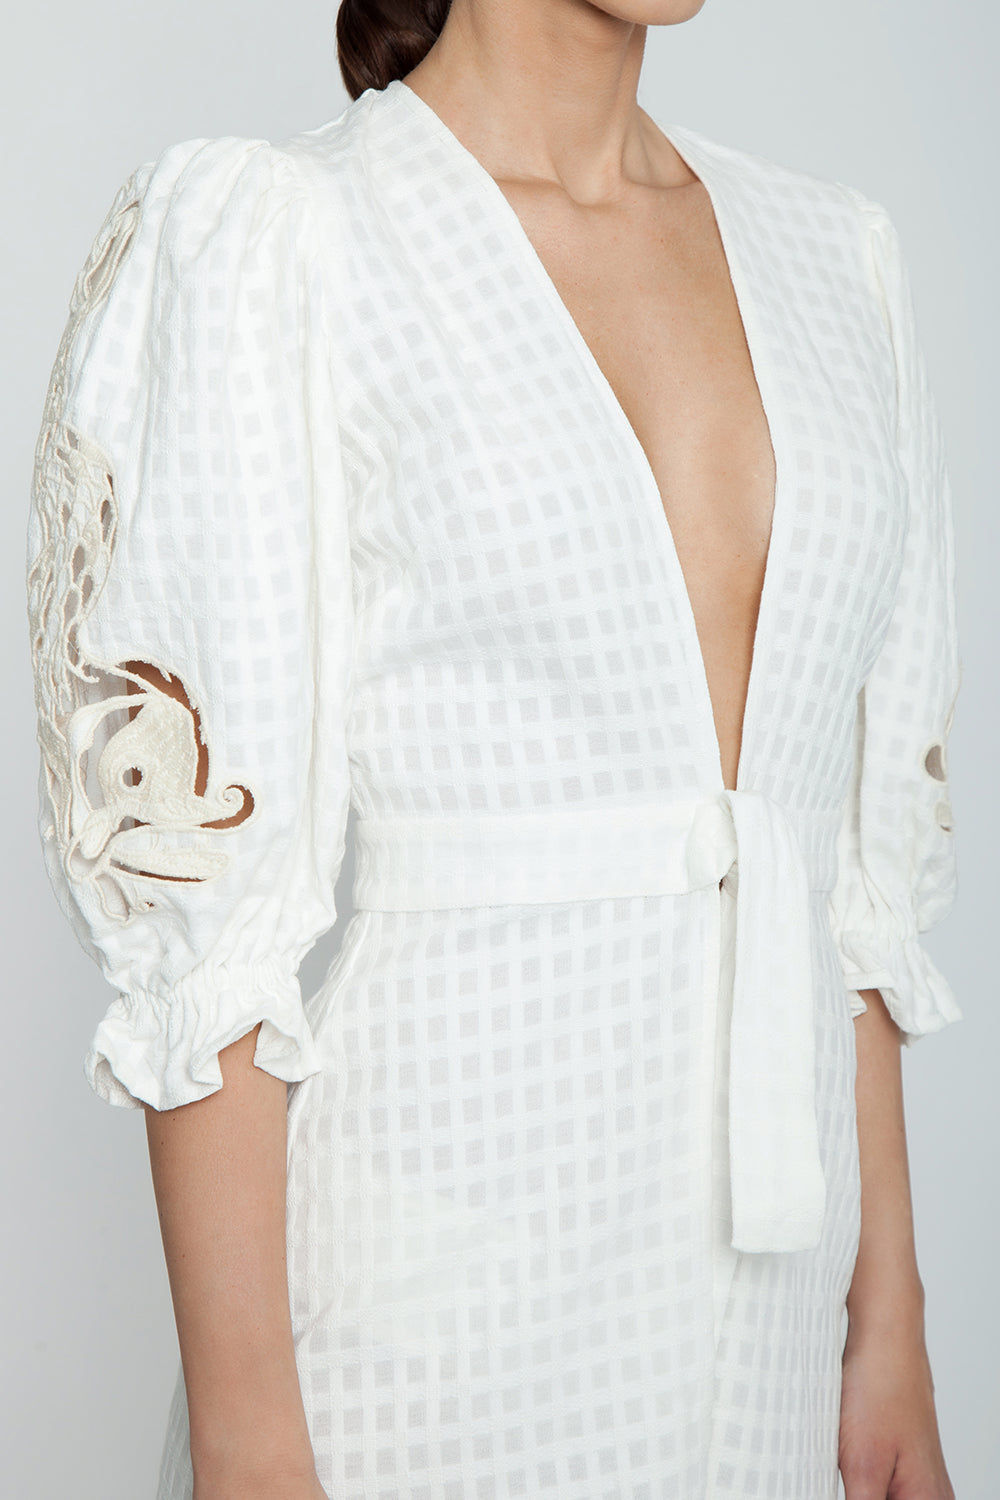 ADRIANA DEGREAS Cotton Embroidery Long Robe Cover-Up - Off White Cover Up | Off White| Adriana Degreas Embroidery Long Robe - Off White Long sleeve robe Plunging neckline Embroidered long sleeve detail  Front tie detail  Detail View